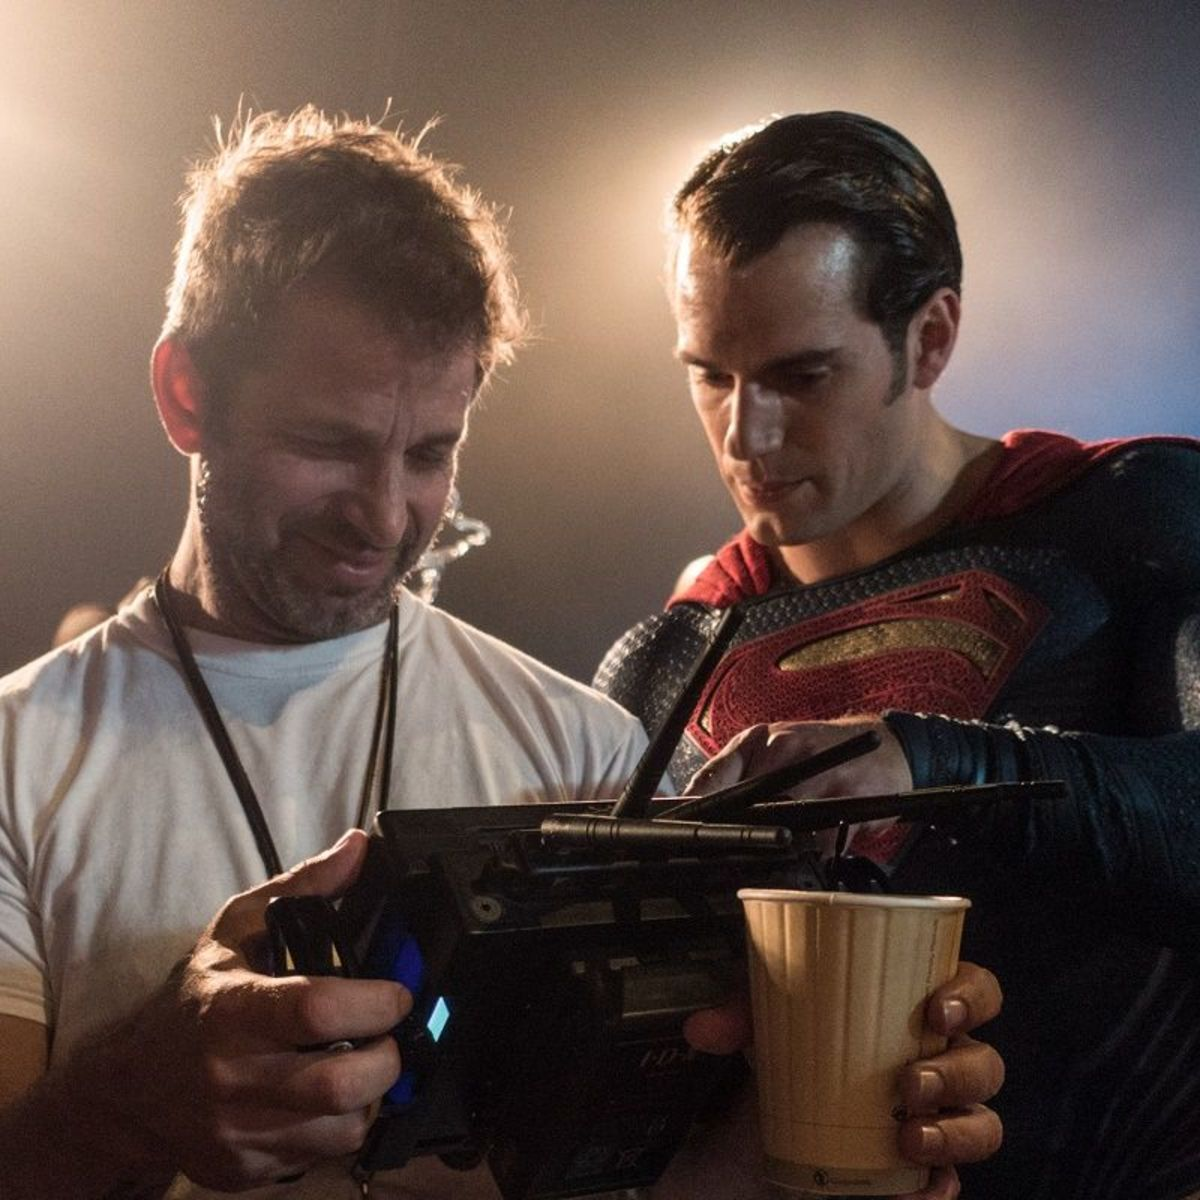 Batman-V-Superman-set-Zack-Snyder-Henry-Cavill1.jpg